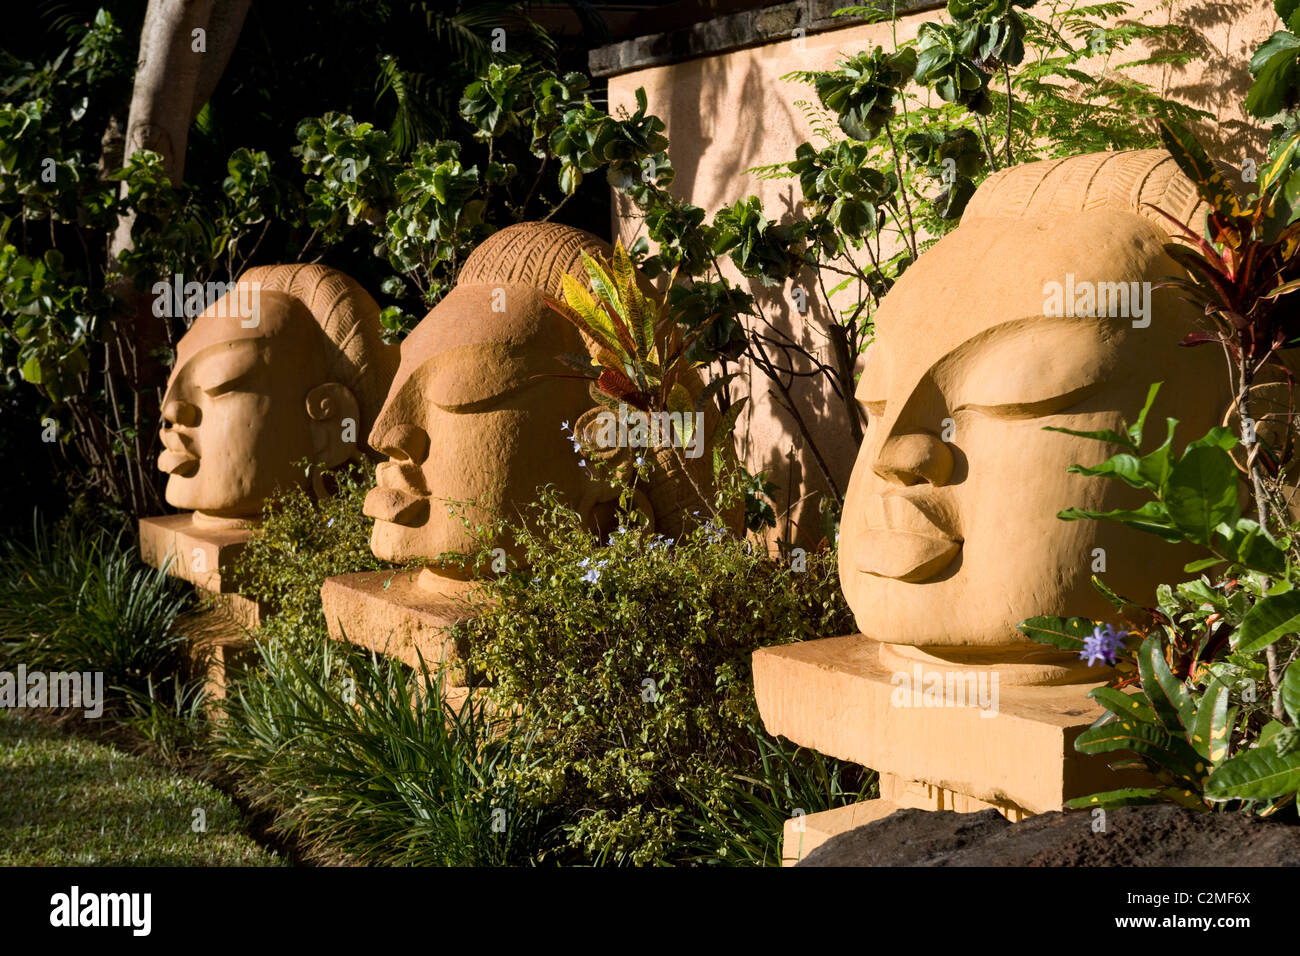 Three sculpted heads in subtropical gardens - Stock Image